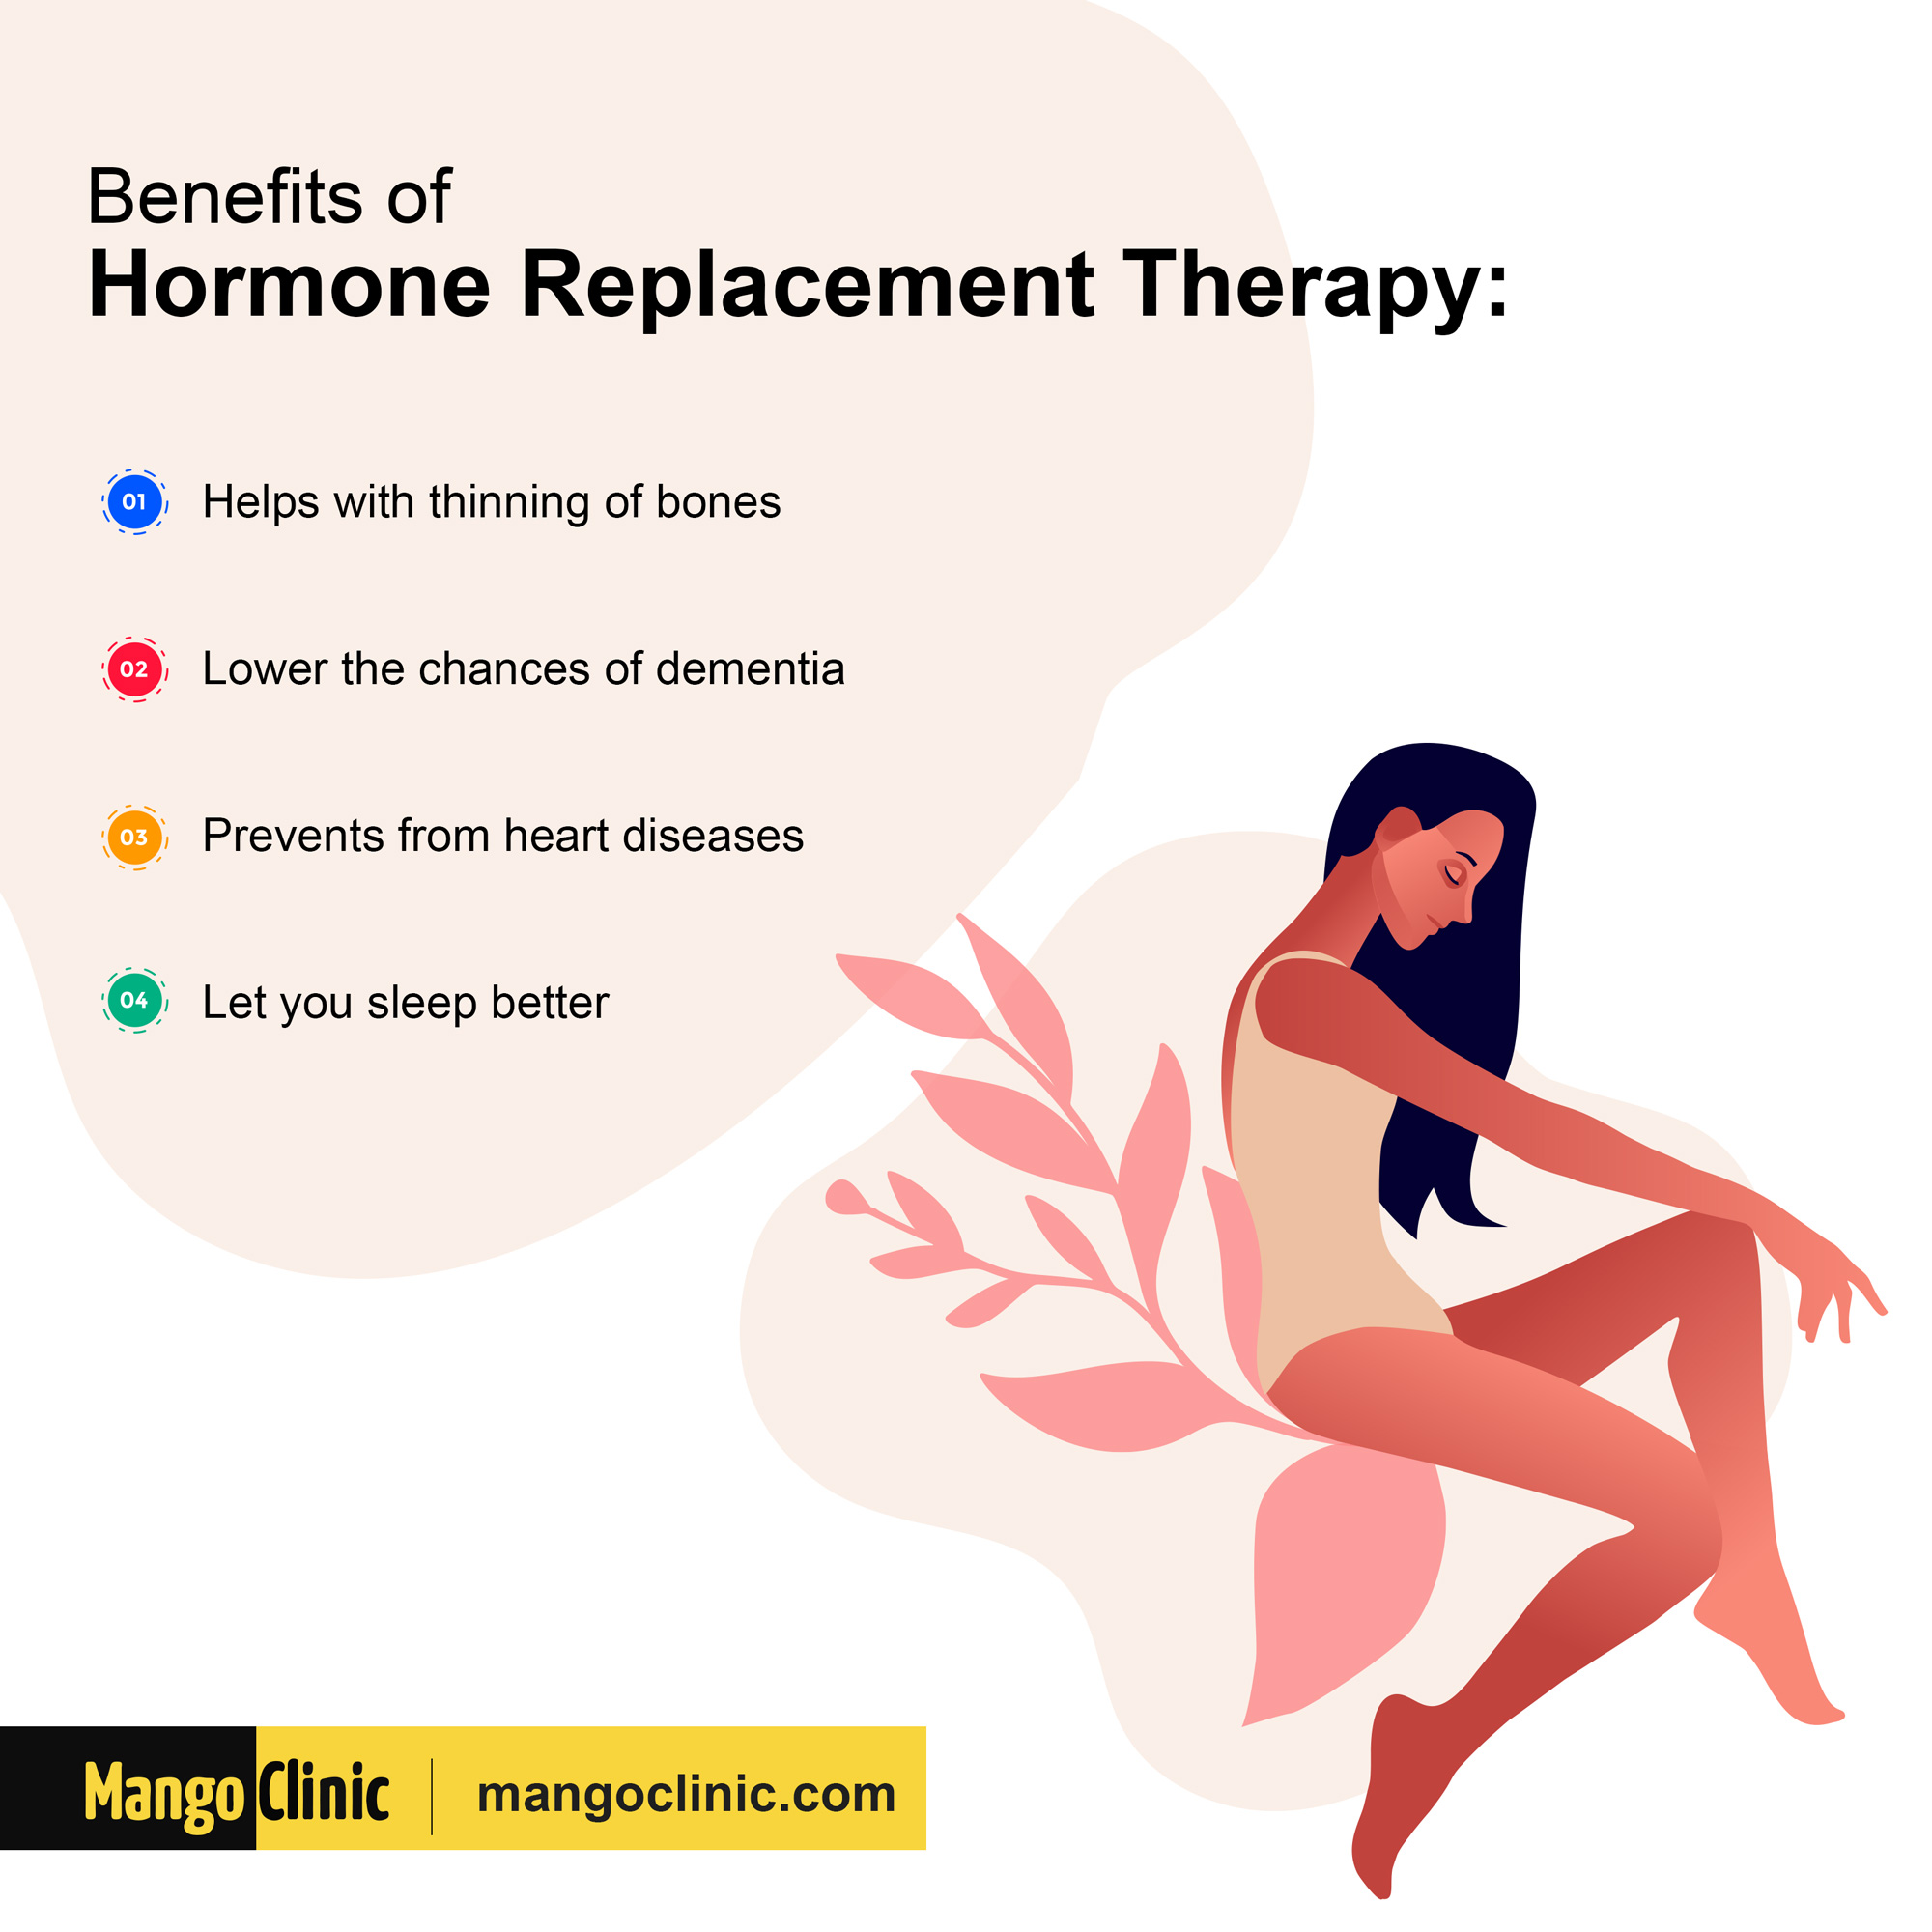 Hormone Replacement Therapy Benefits